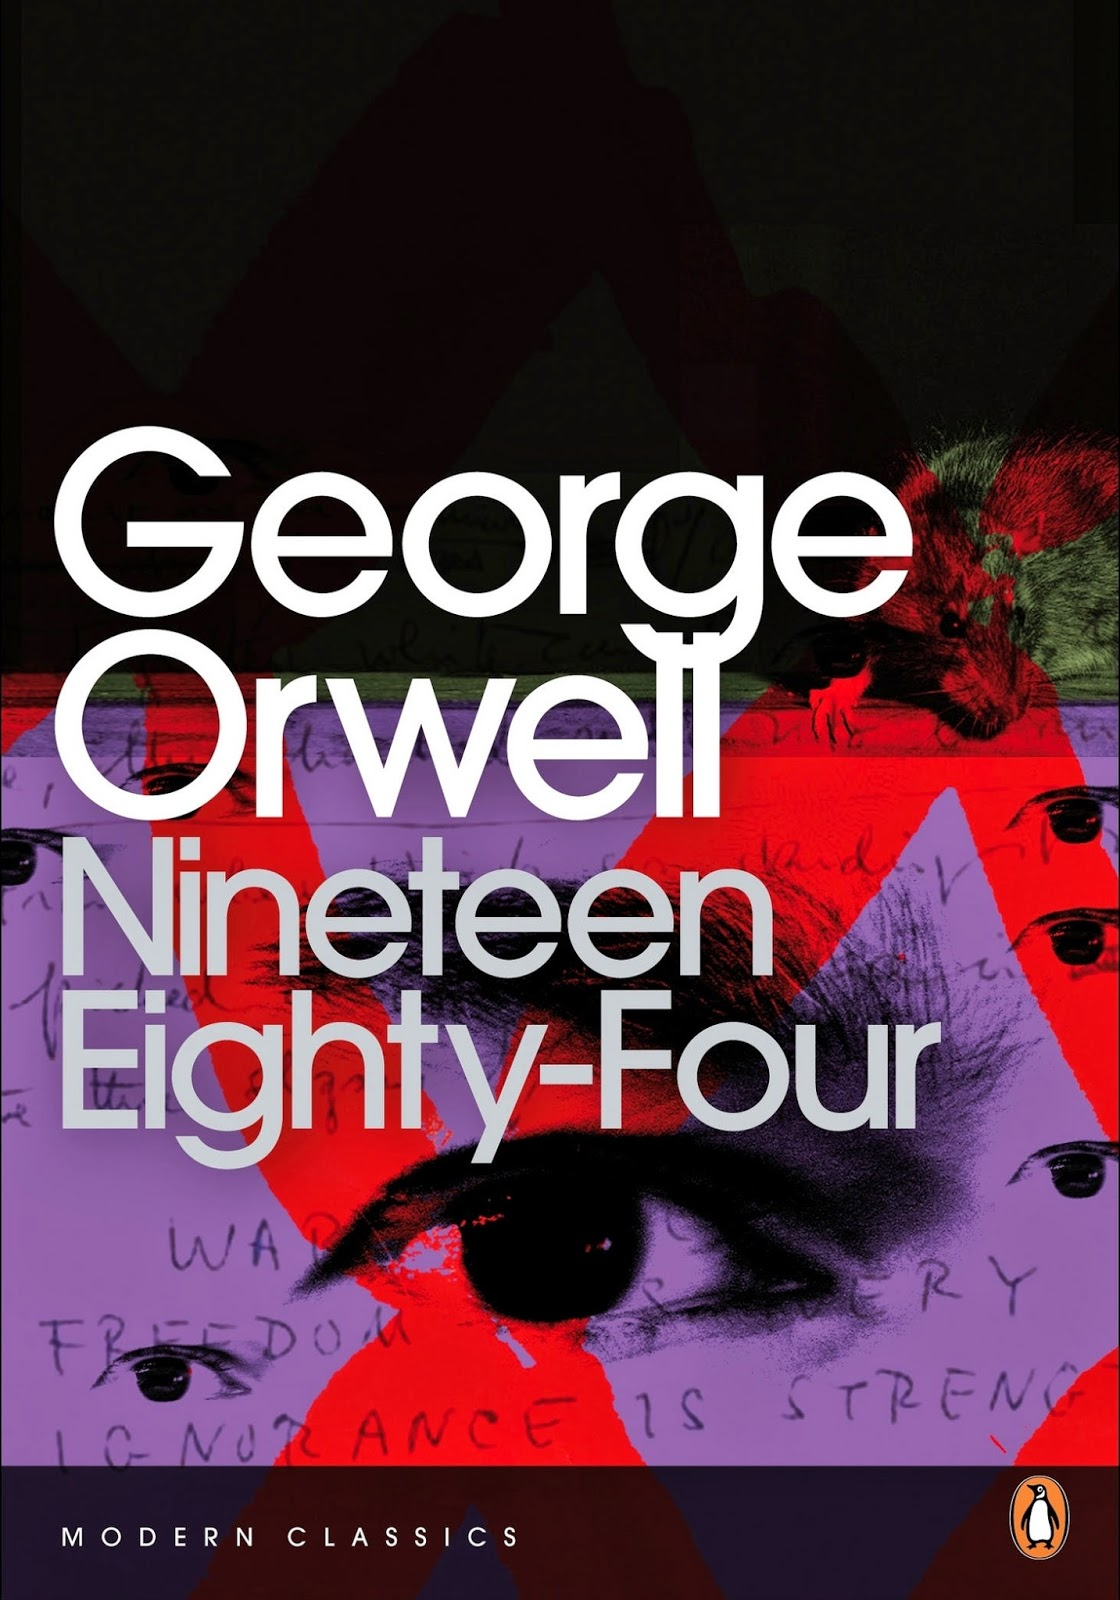 a short analysis of a nineteen eighty four novel Colin brush: 'it was a bright cold day in april' george orwell: nineteen eighty-four 'it was a bright cold day in april, and the clocks were striking thirteen.